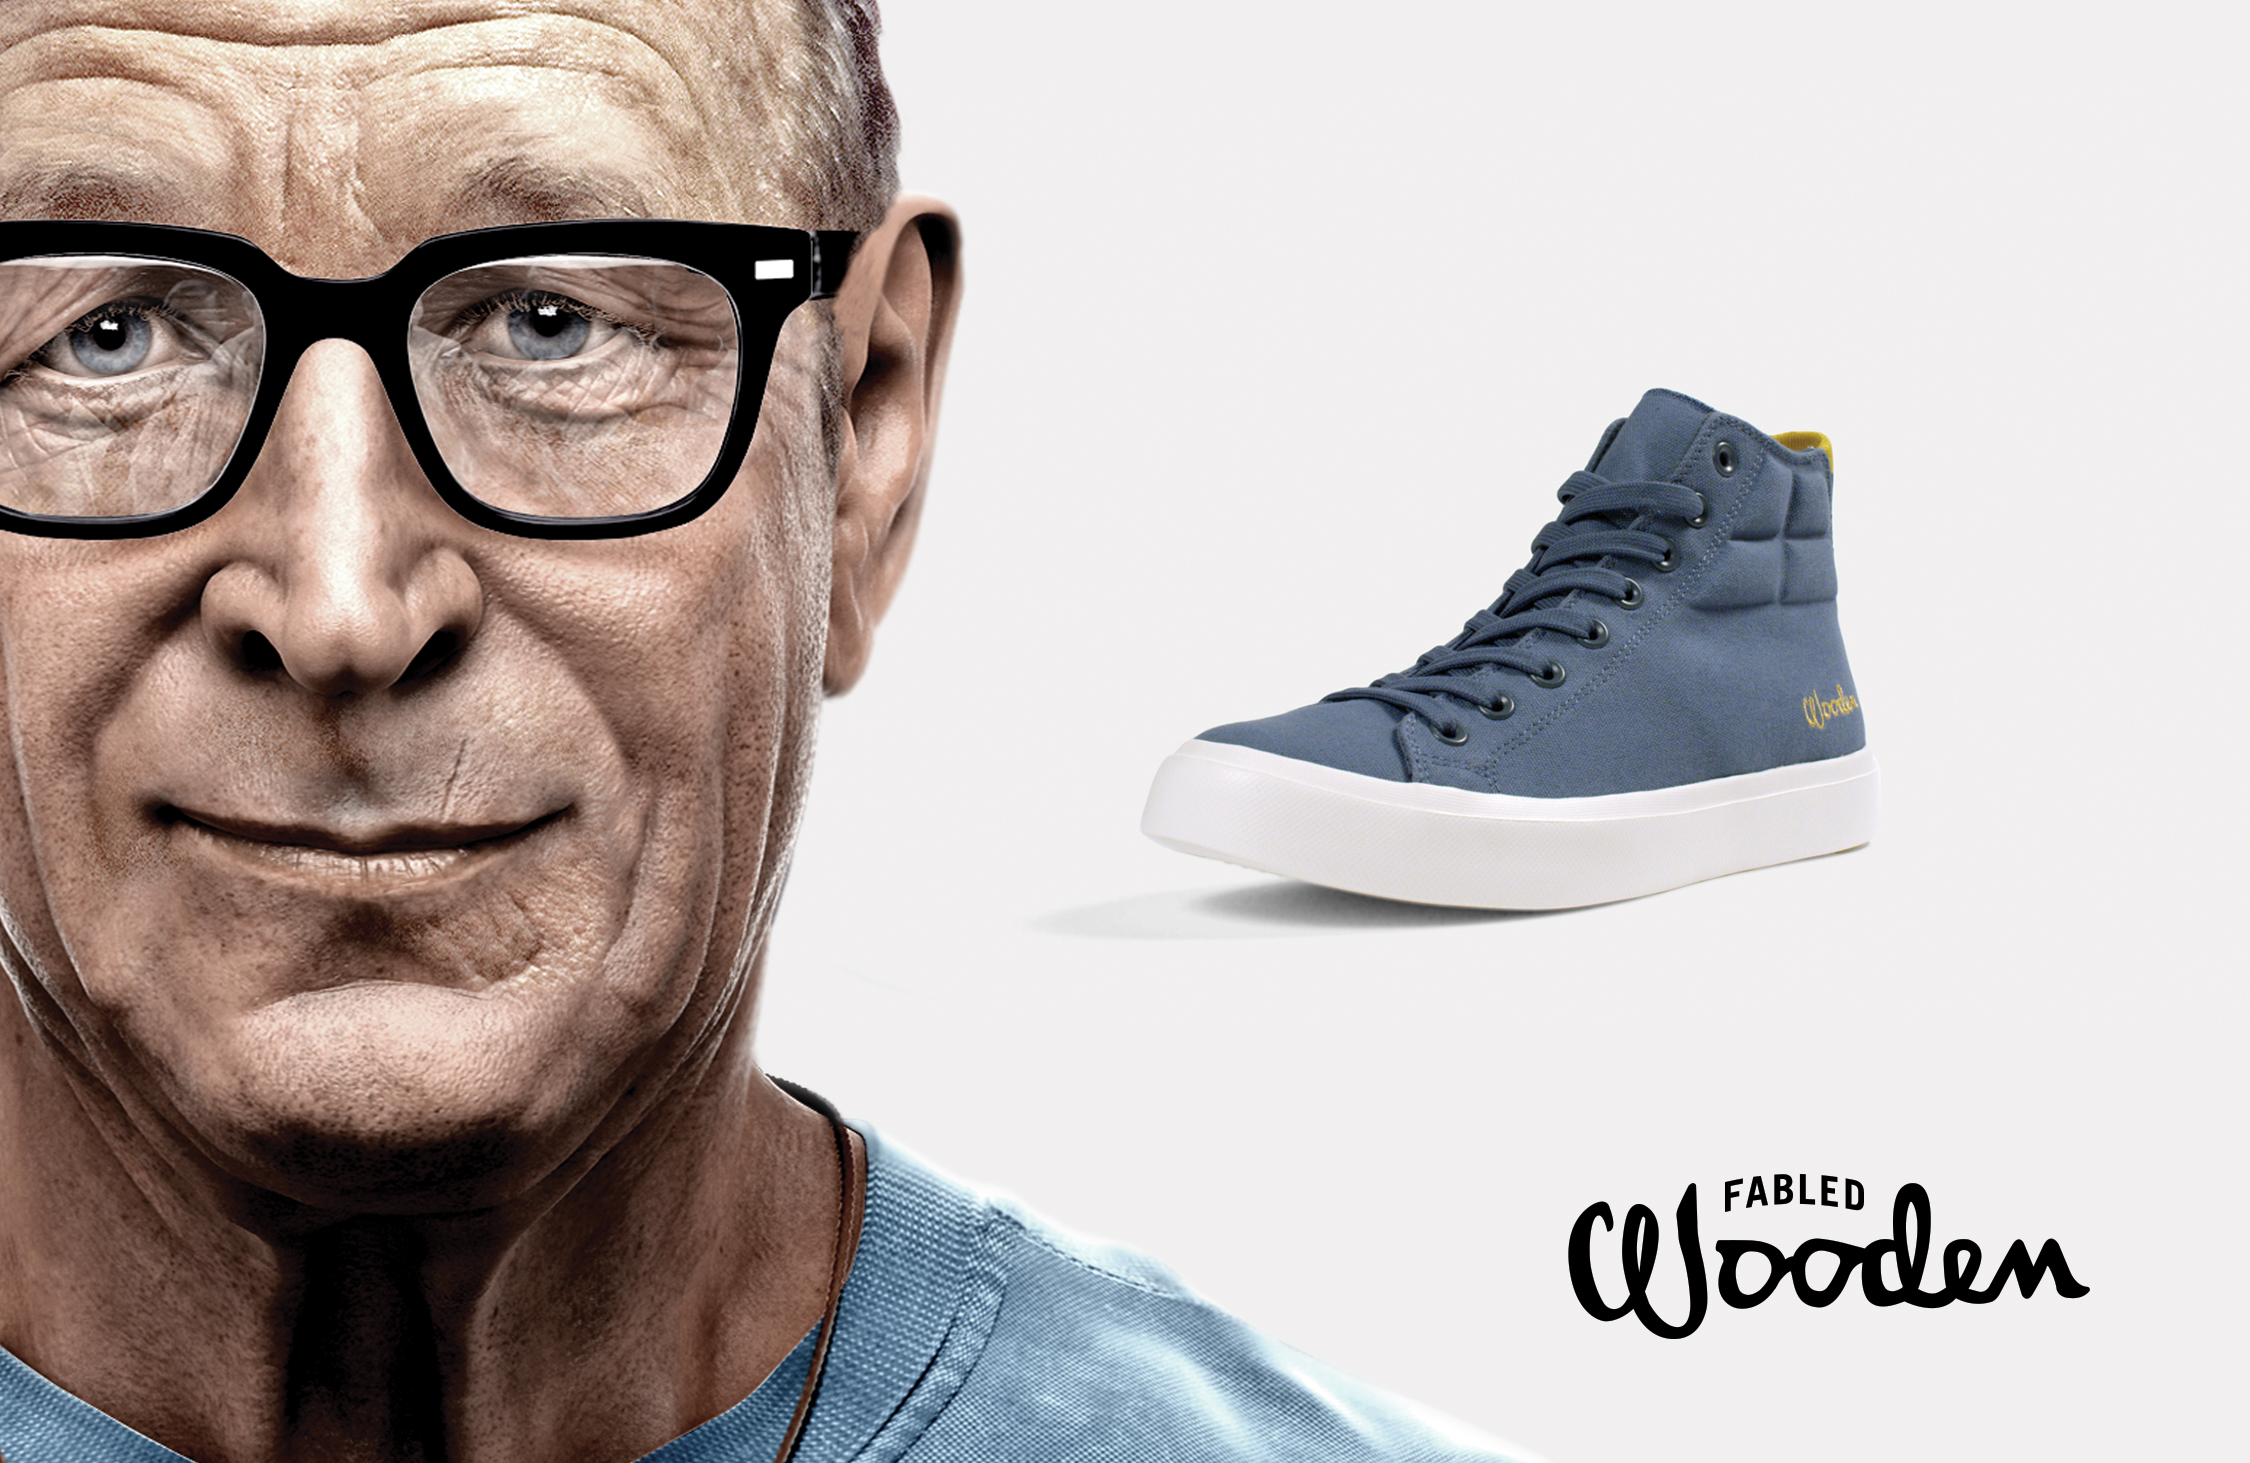 Fabled John Wooden shoe